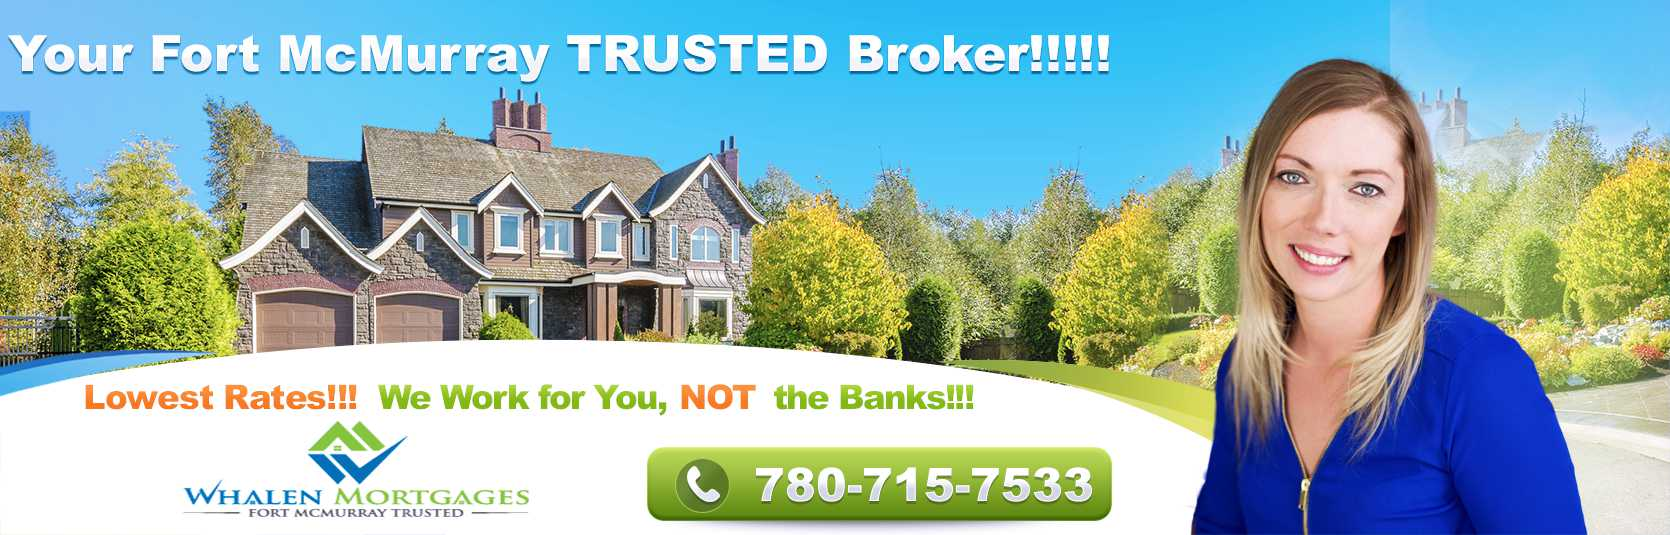 Fort McMurray Mortgage | Apply Now | Whalen Mortgages Your Trusted Mortgage Brokers